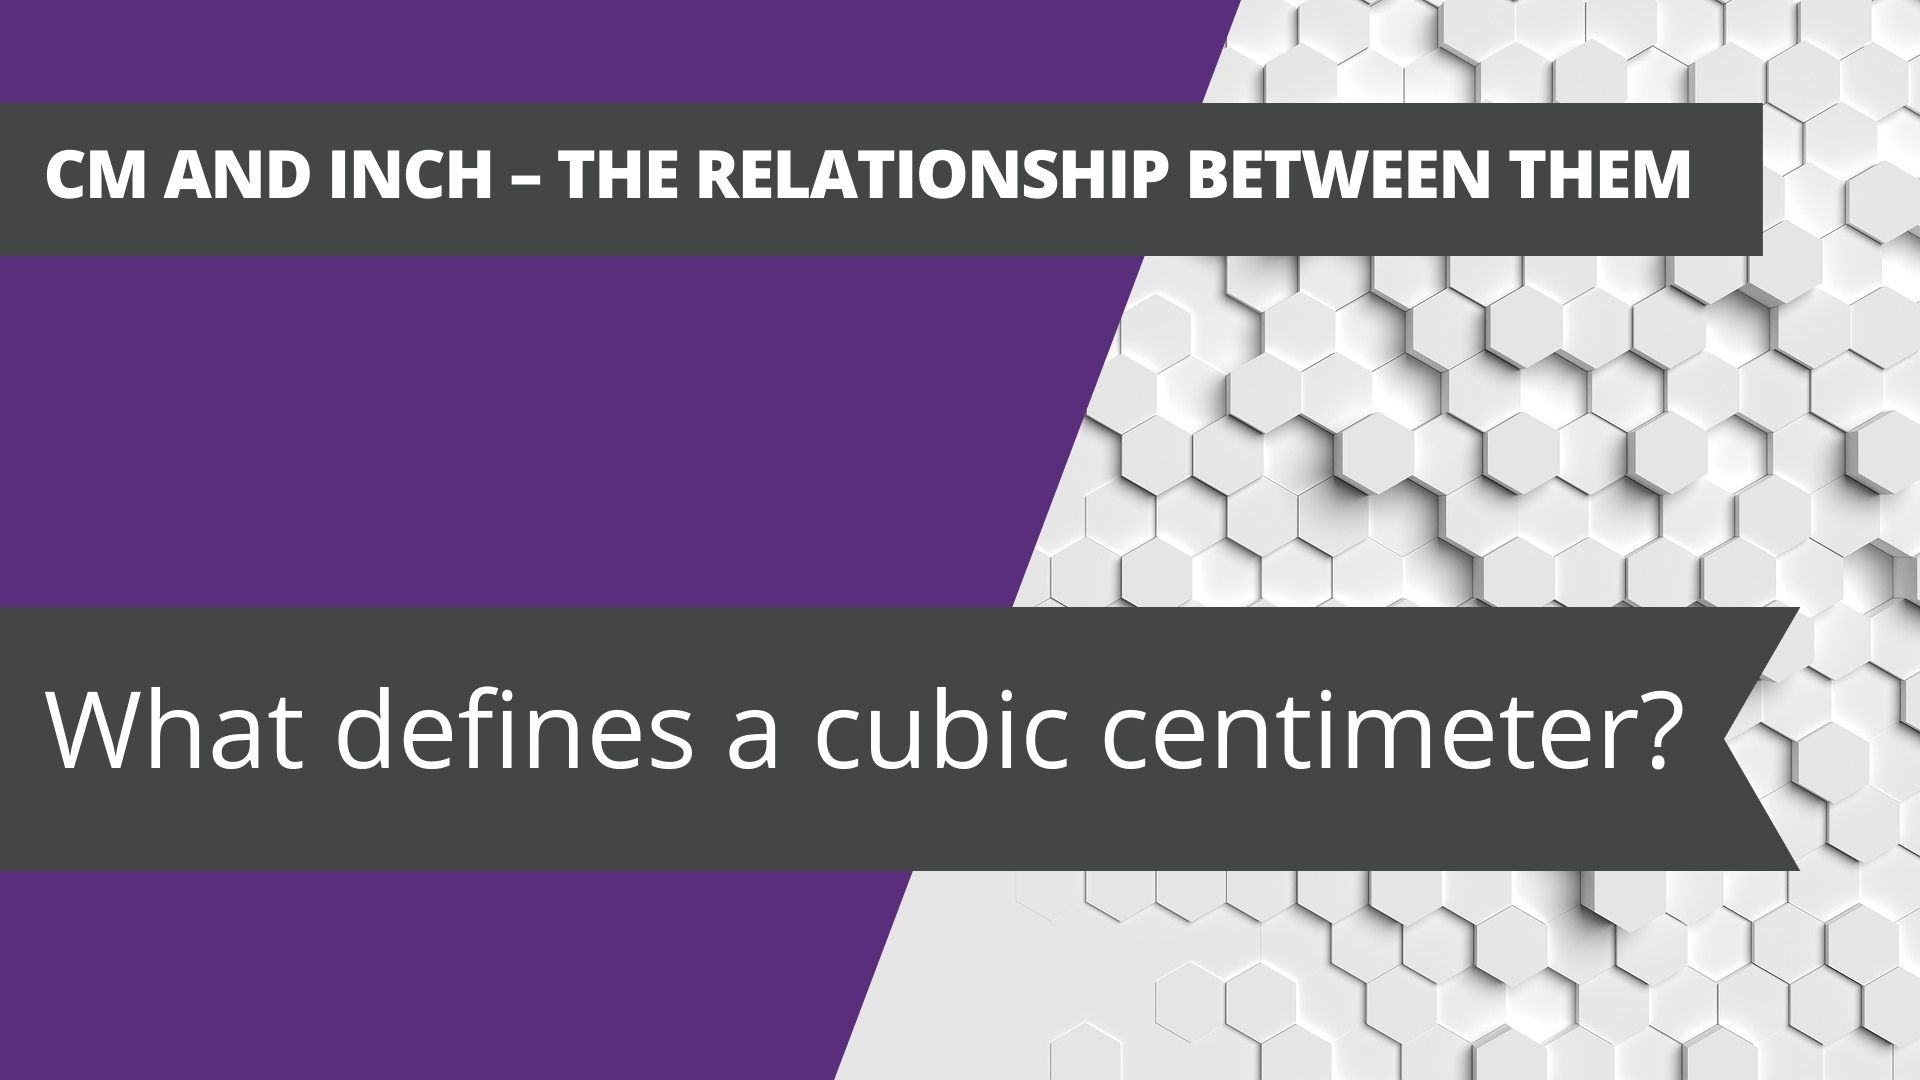 Cm and inch – the relationship between them